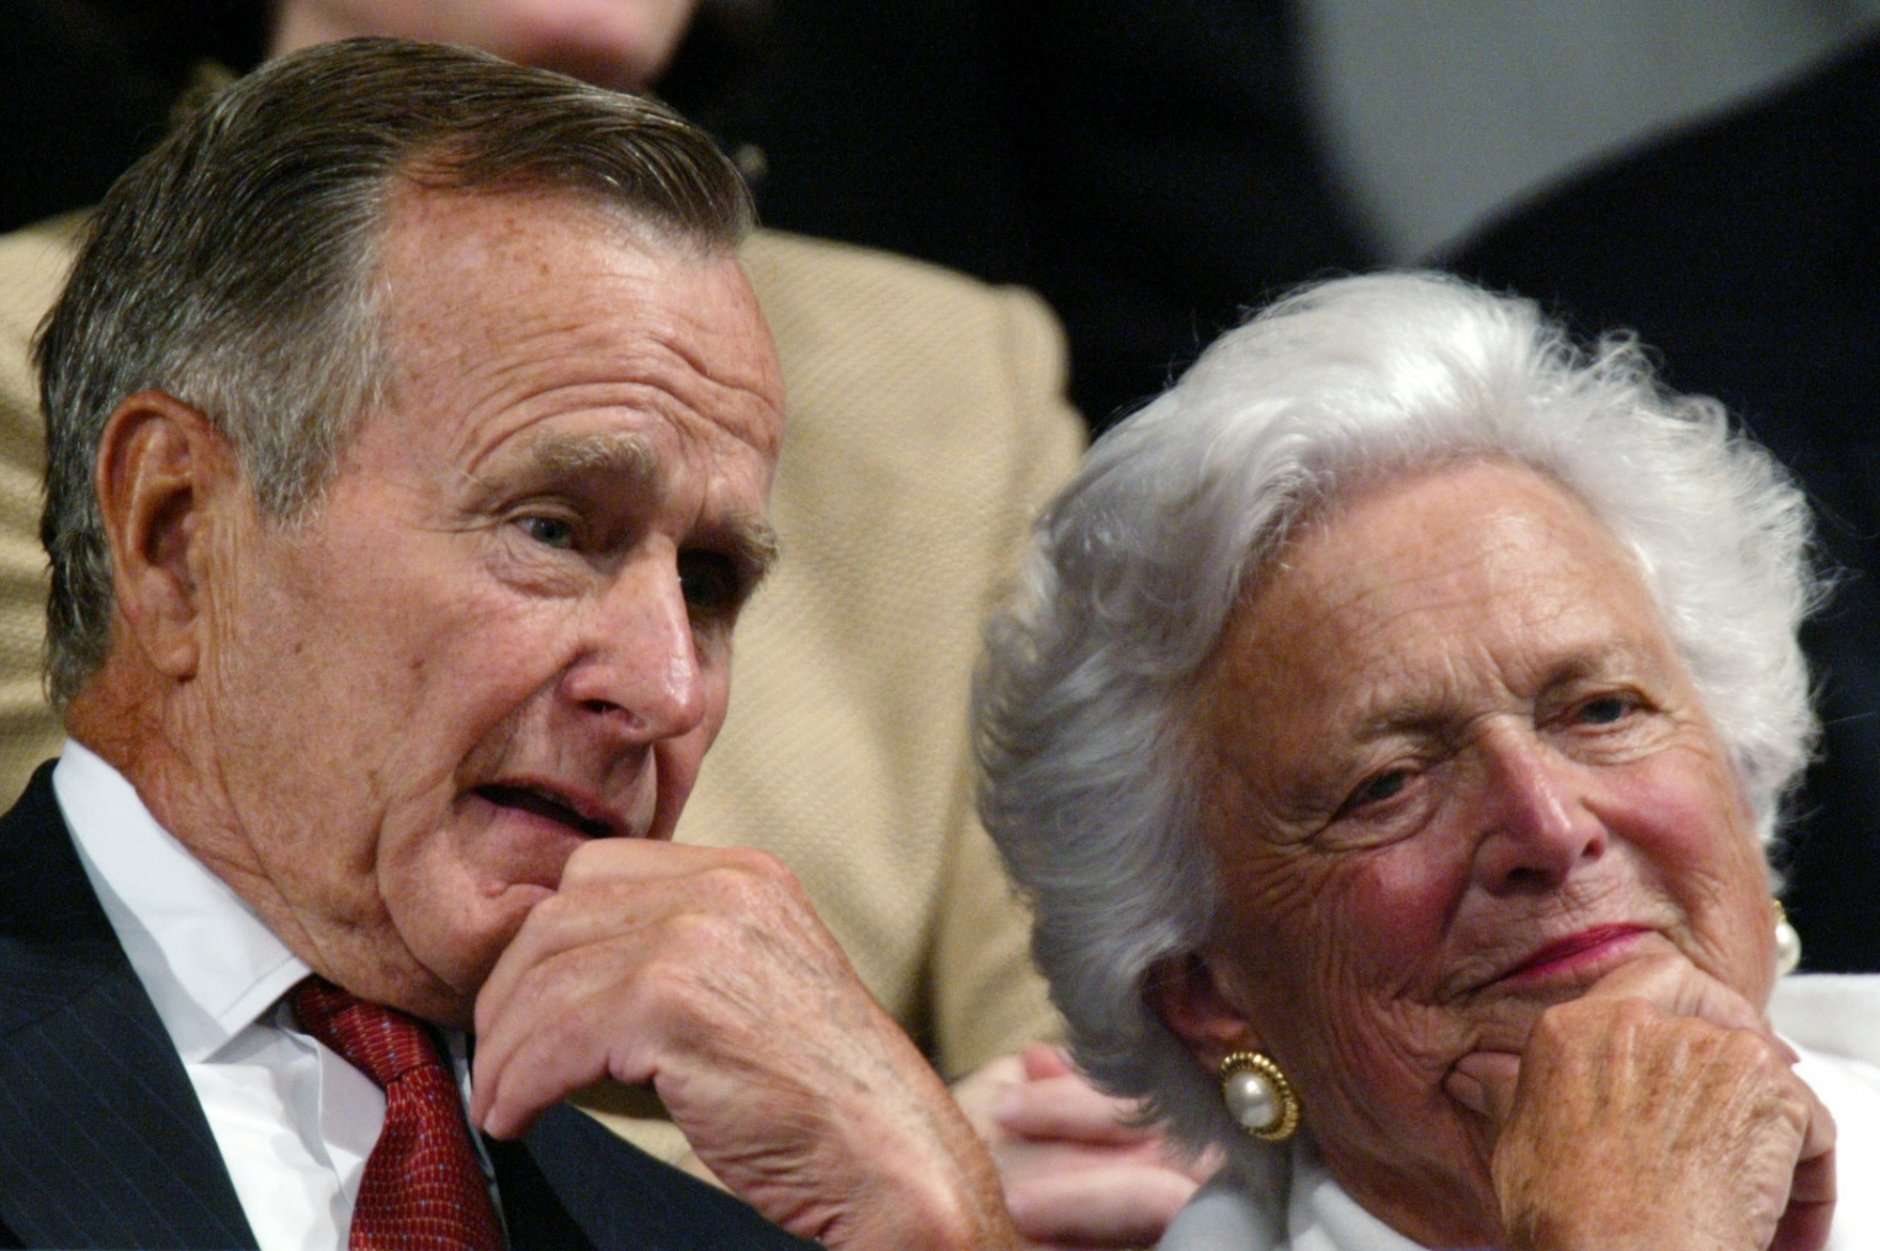 """FILE - In this Sept. 2, 2004, file photo, former President George H.W. Bush and former first lady Barbara Bush listen as the president accepts the party nomination at the Republican National Convention in New York. With her husband still at her side, Barbara Bush has decided to decline further medical treatment for health problems and focus instead on """"comfort care"""" at their home in Houston. Family spokesman Jim McGrath disclosed Barbara Bush's decision Sunday, April 15, 2018. (AP Photo/Paul Sancya, File)"""